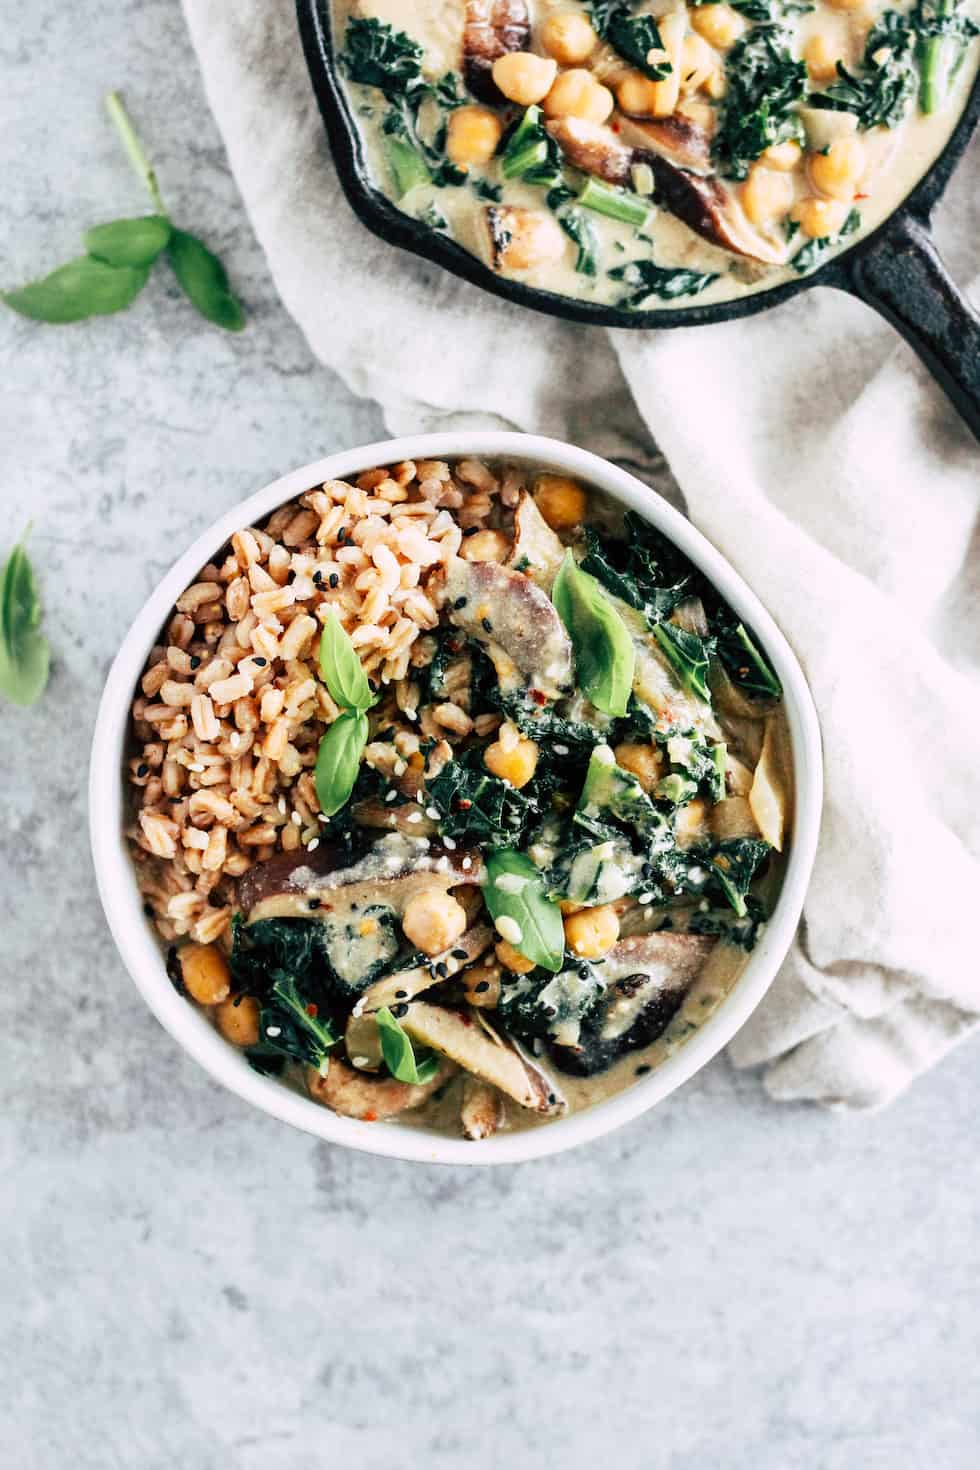 Creamy Vegan Miso Bowls with cast iron skillet and grey background.